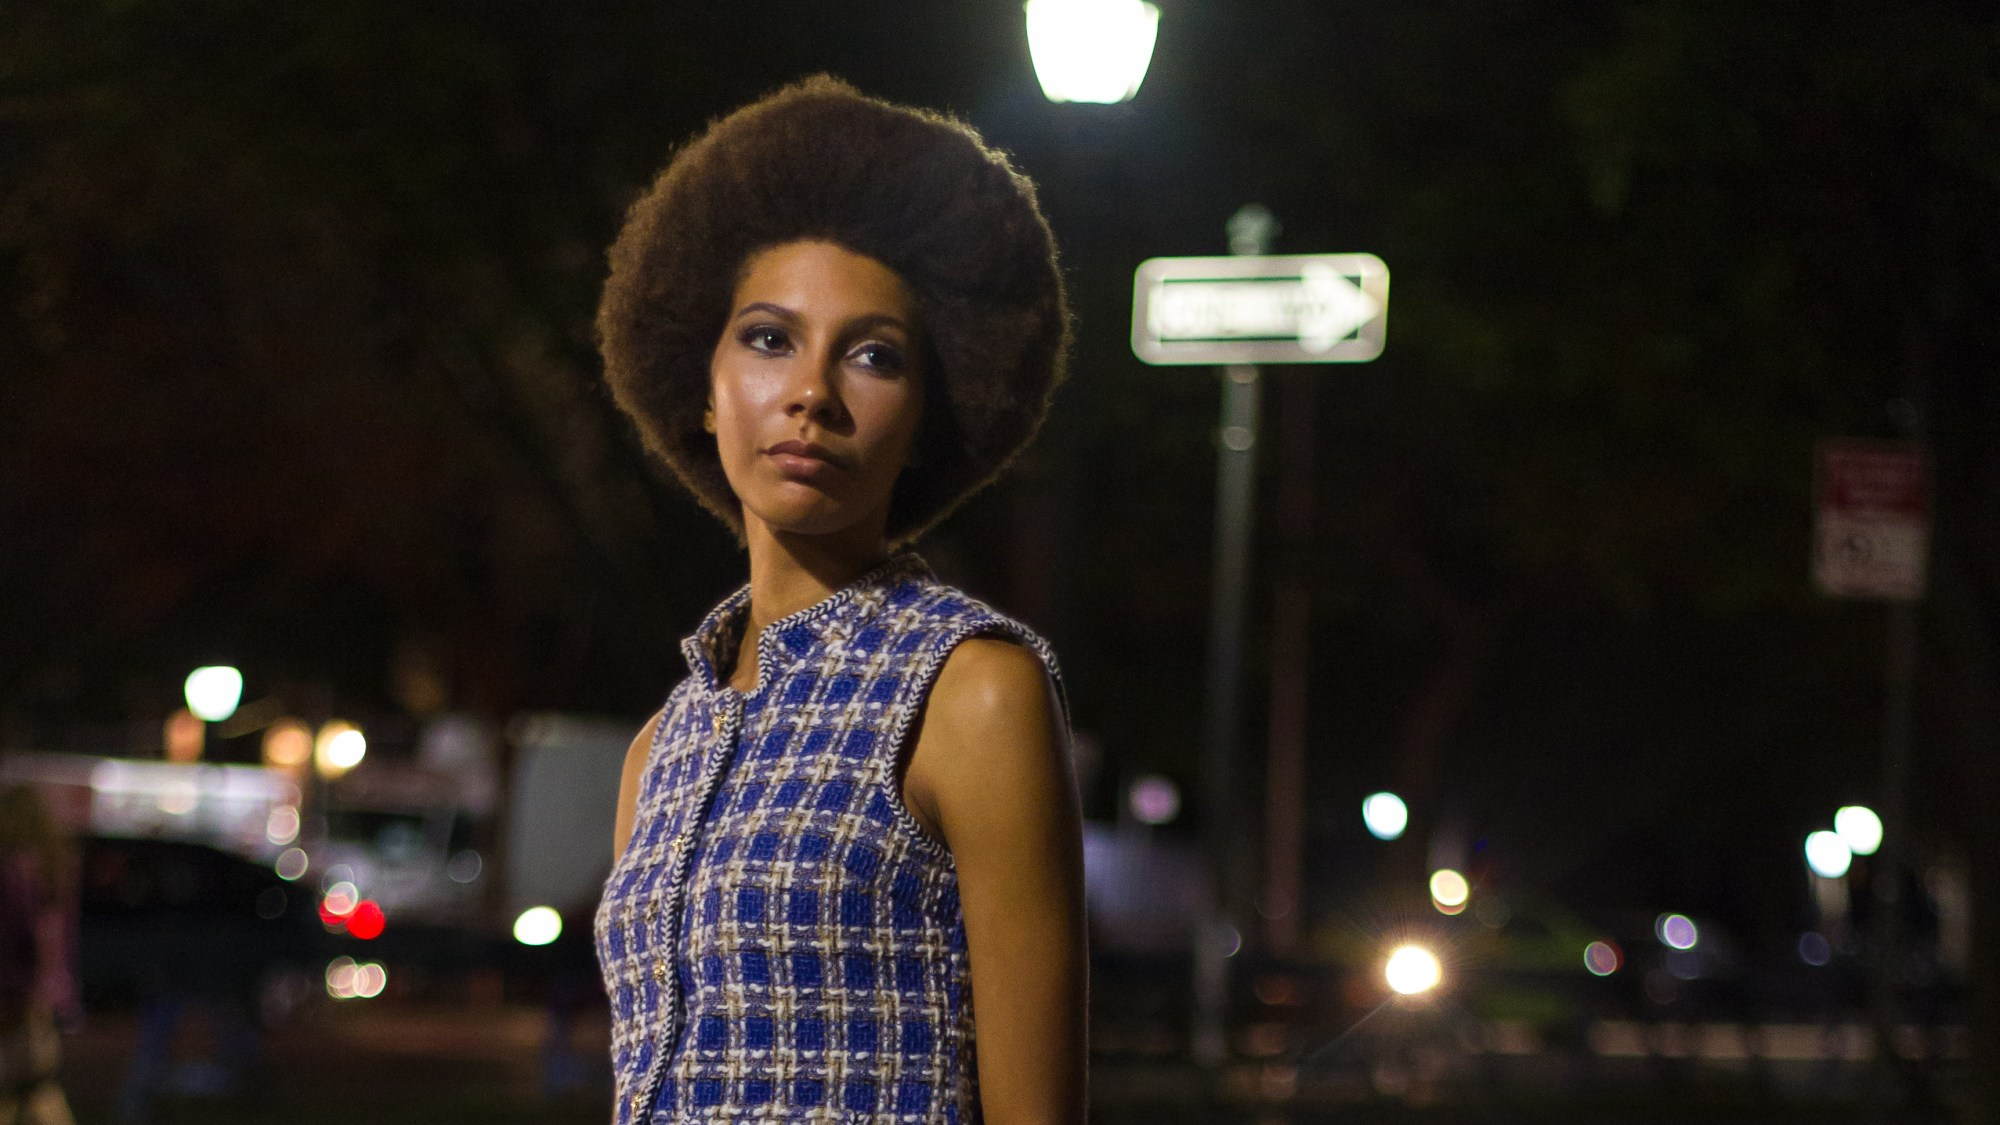 Priscilla-crown-heights-afro